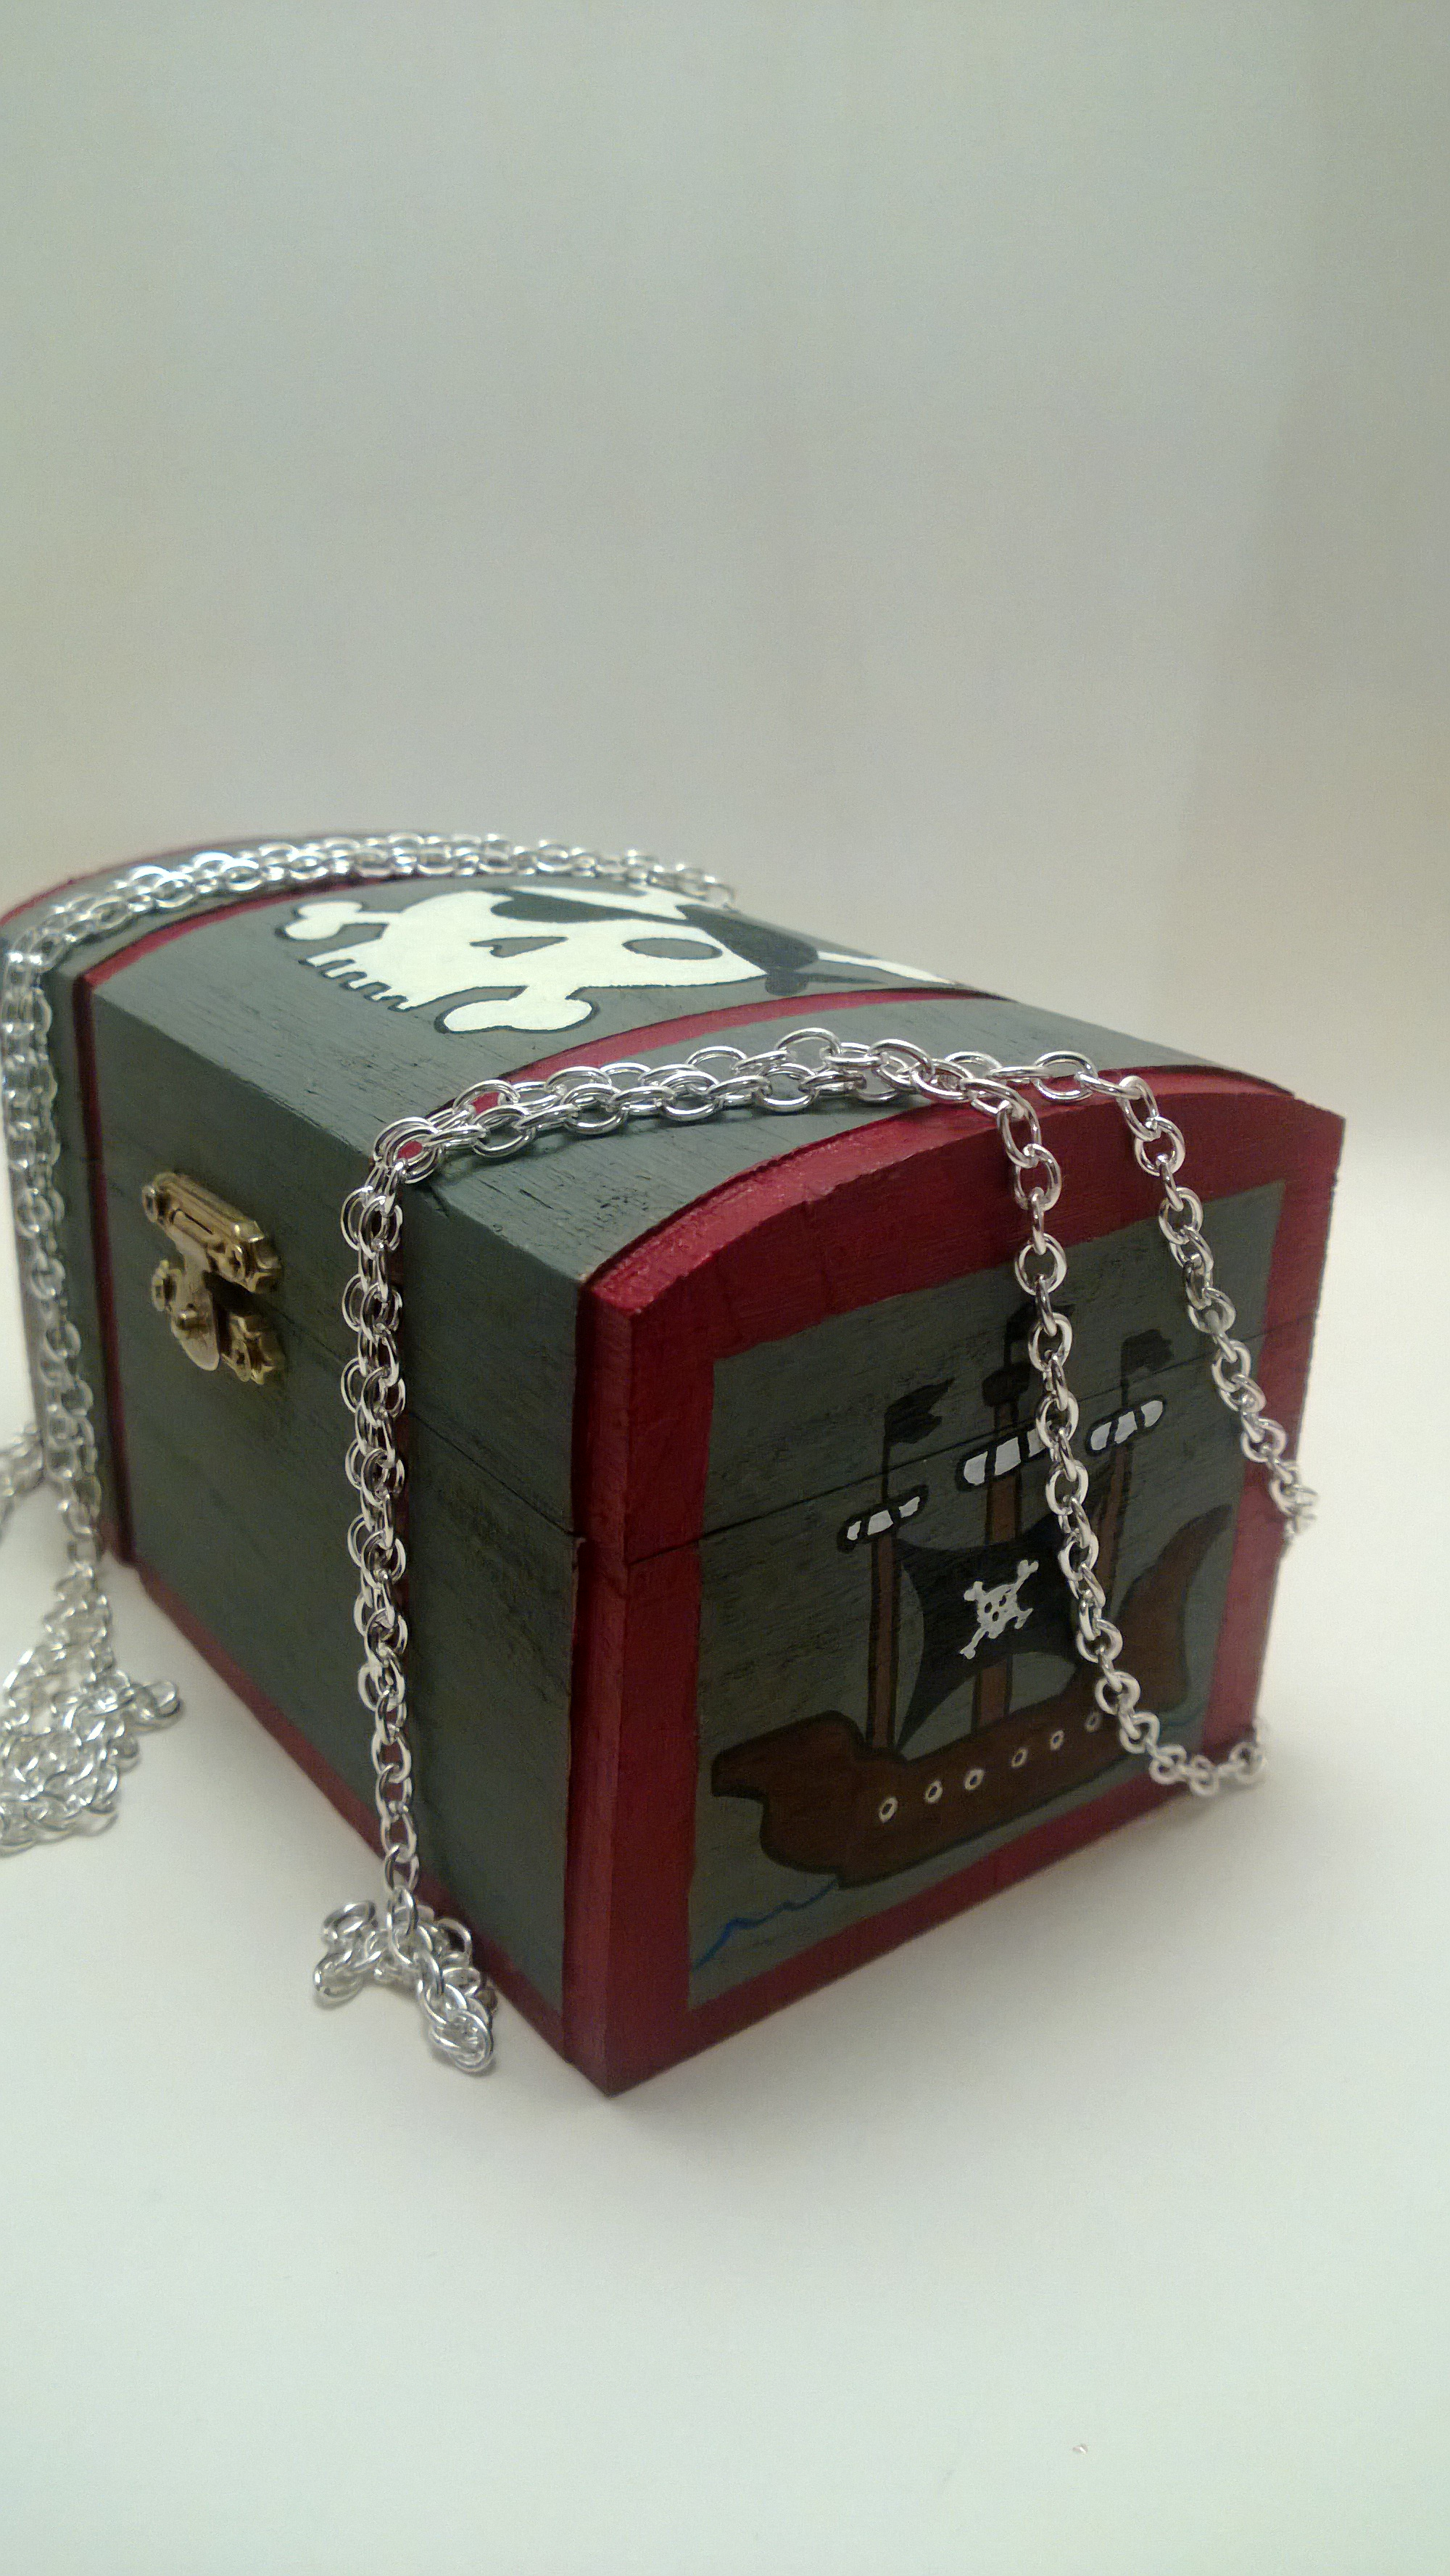 http://justforlittles.storenvy.com/collections/125565-new-featured/products/1938858-pirate-treasure-box